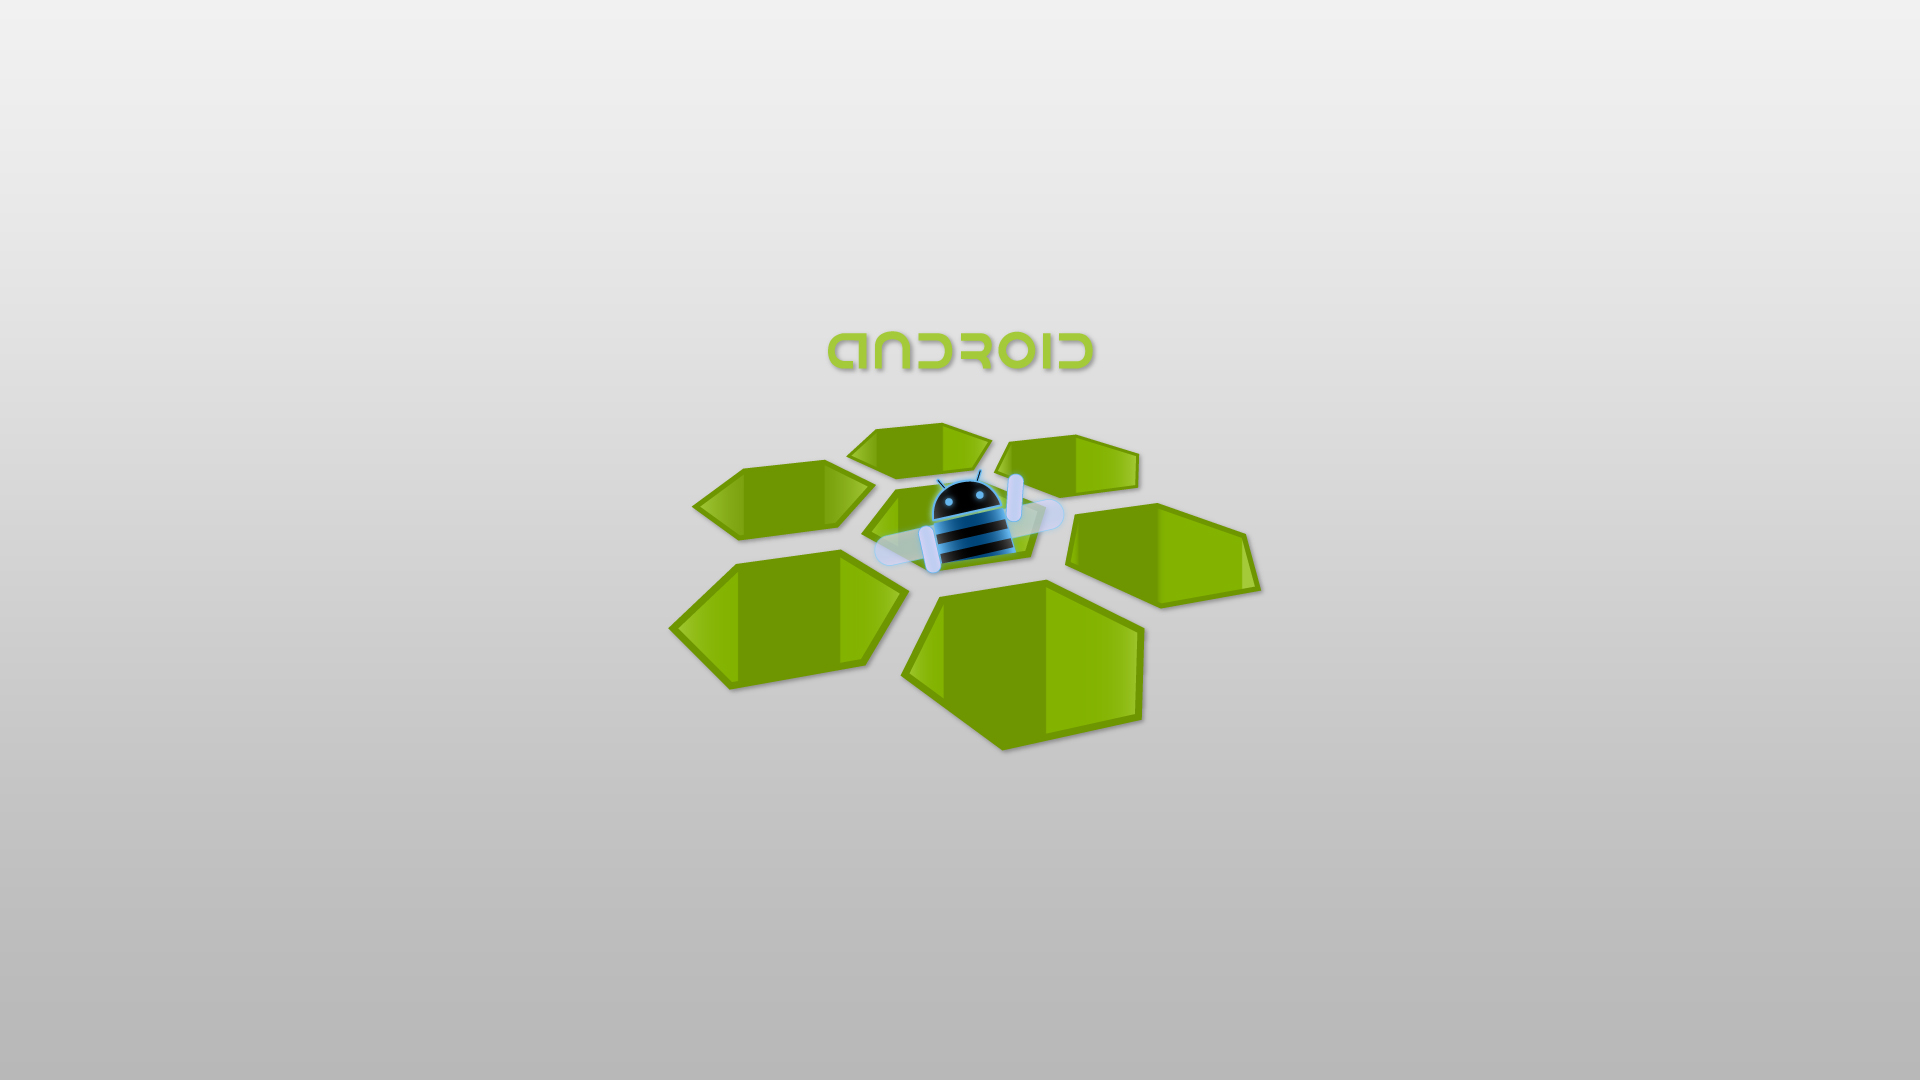 android desktop wallpaper wallpapers high quality